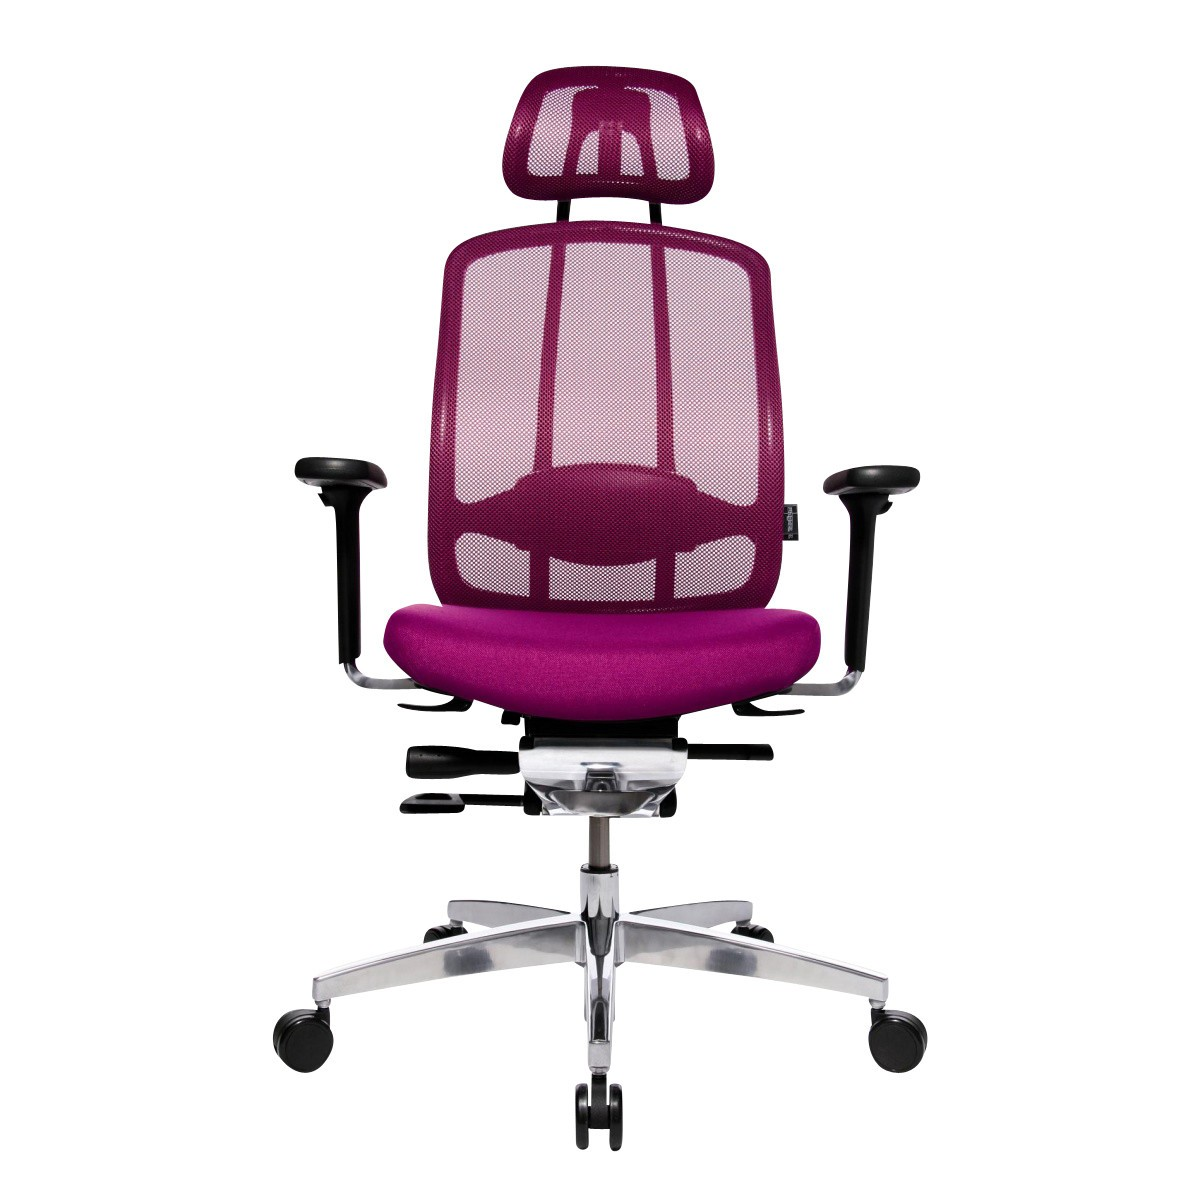 Wagner Alumedic 10 Office Chair